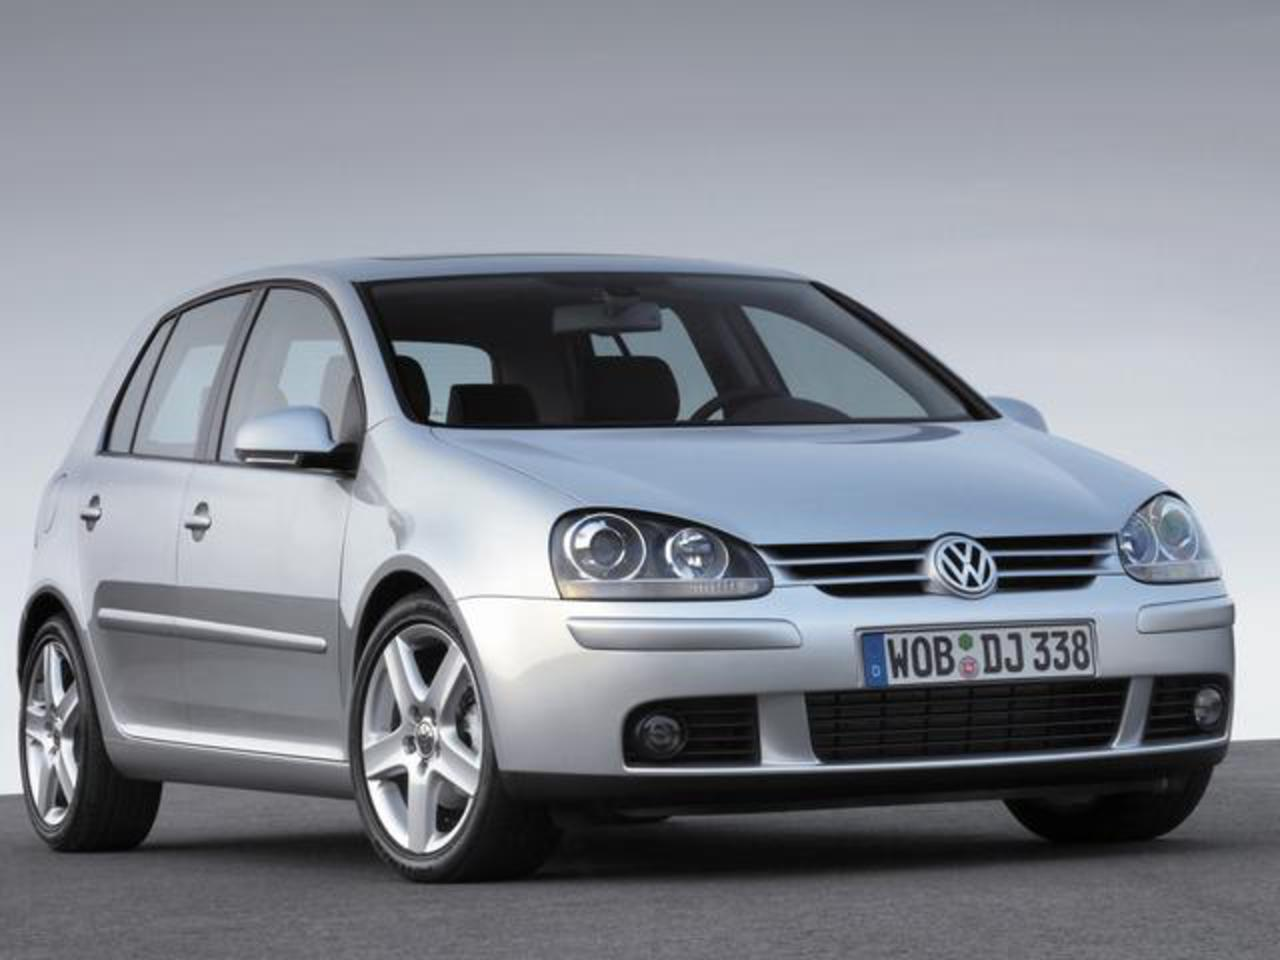 topworldauto photos of volkswagen golf iii rabbit tdi photo galleries. Black Bedroom Furniture Sets. Home Design Ideas